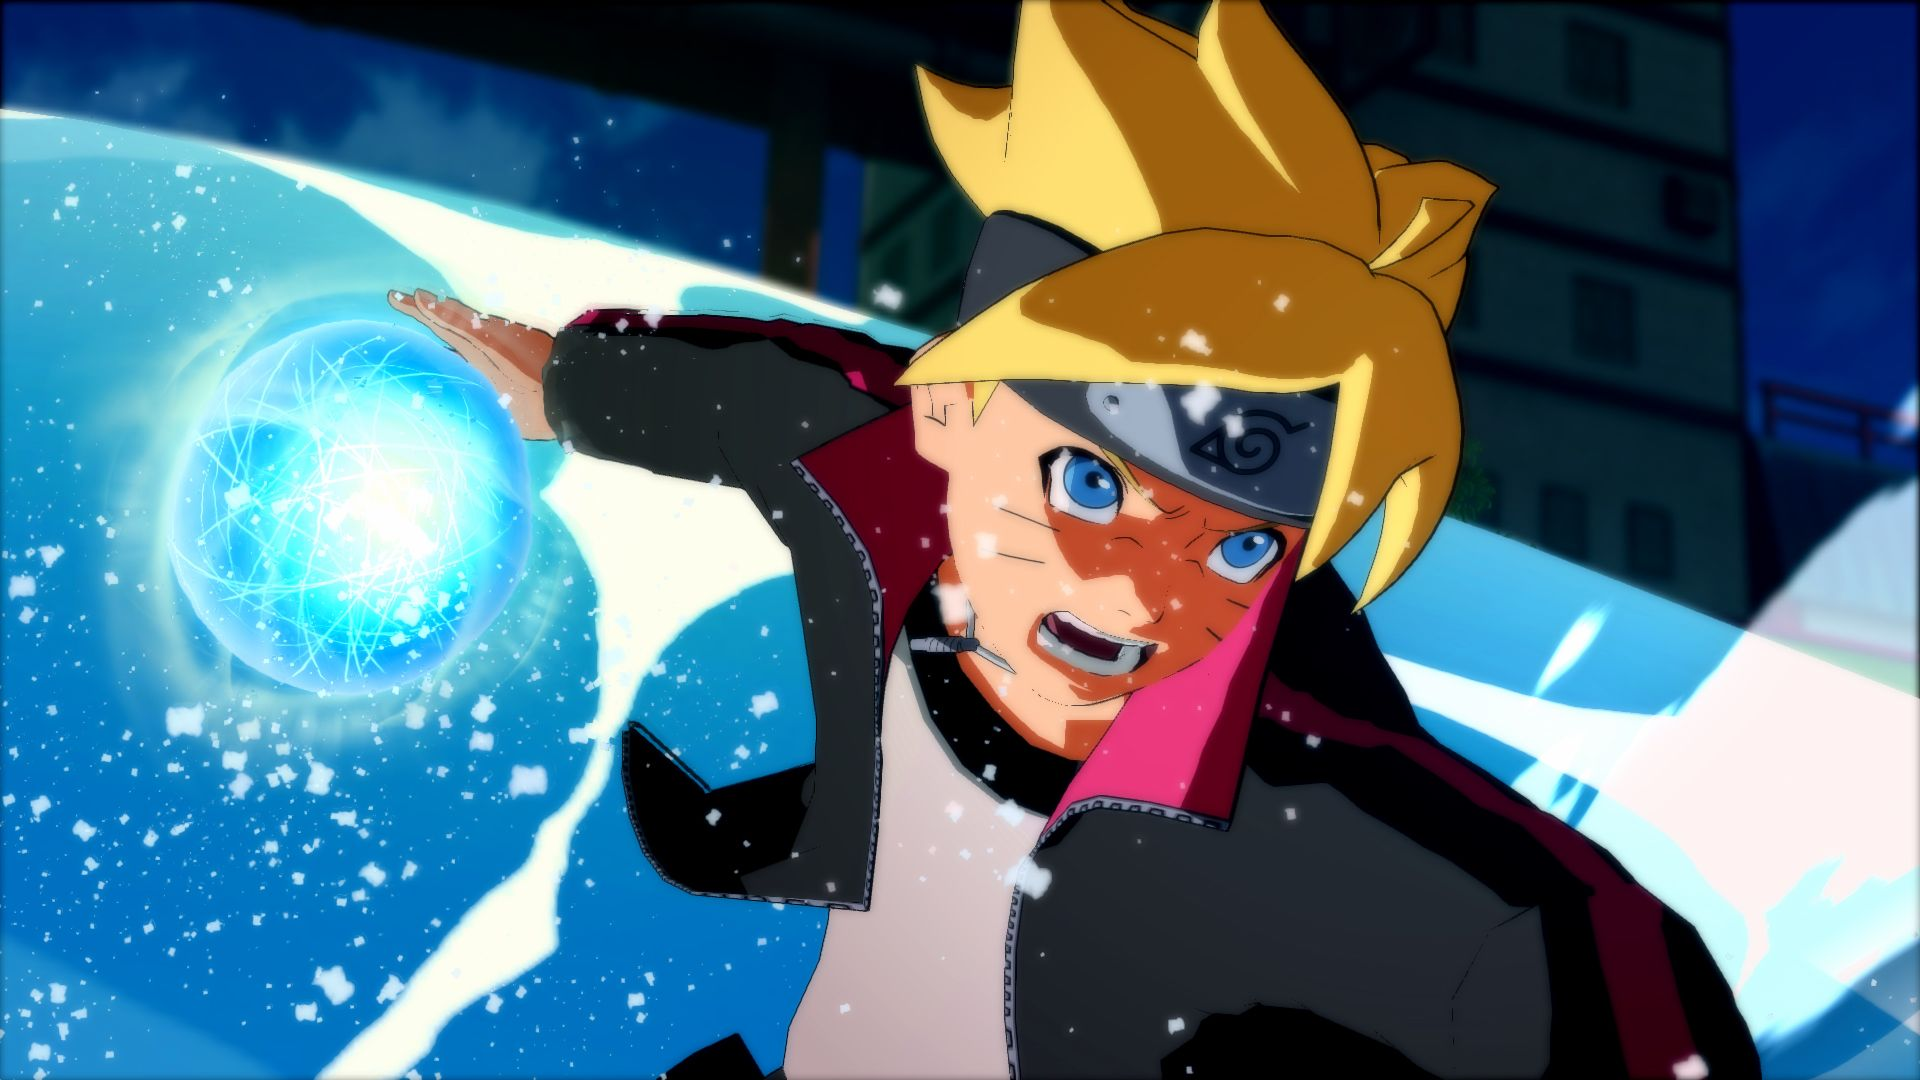 The Road to Boruto Expansion is coming to NARUTO SHIPPUDEN